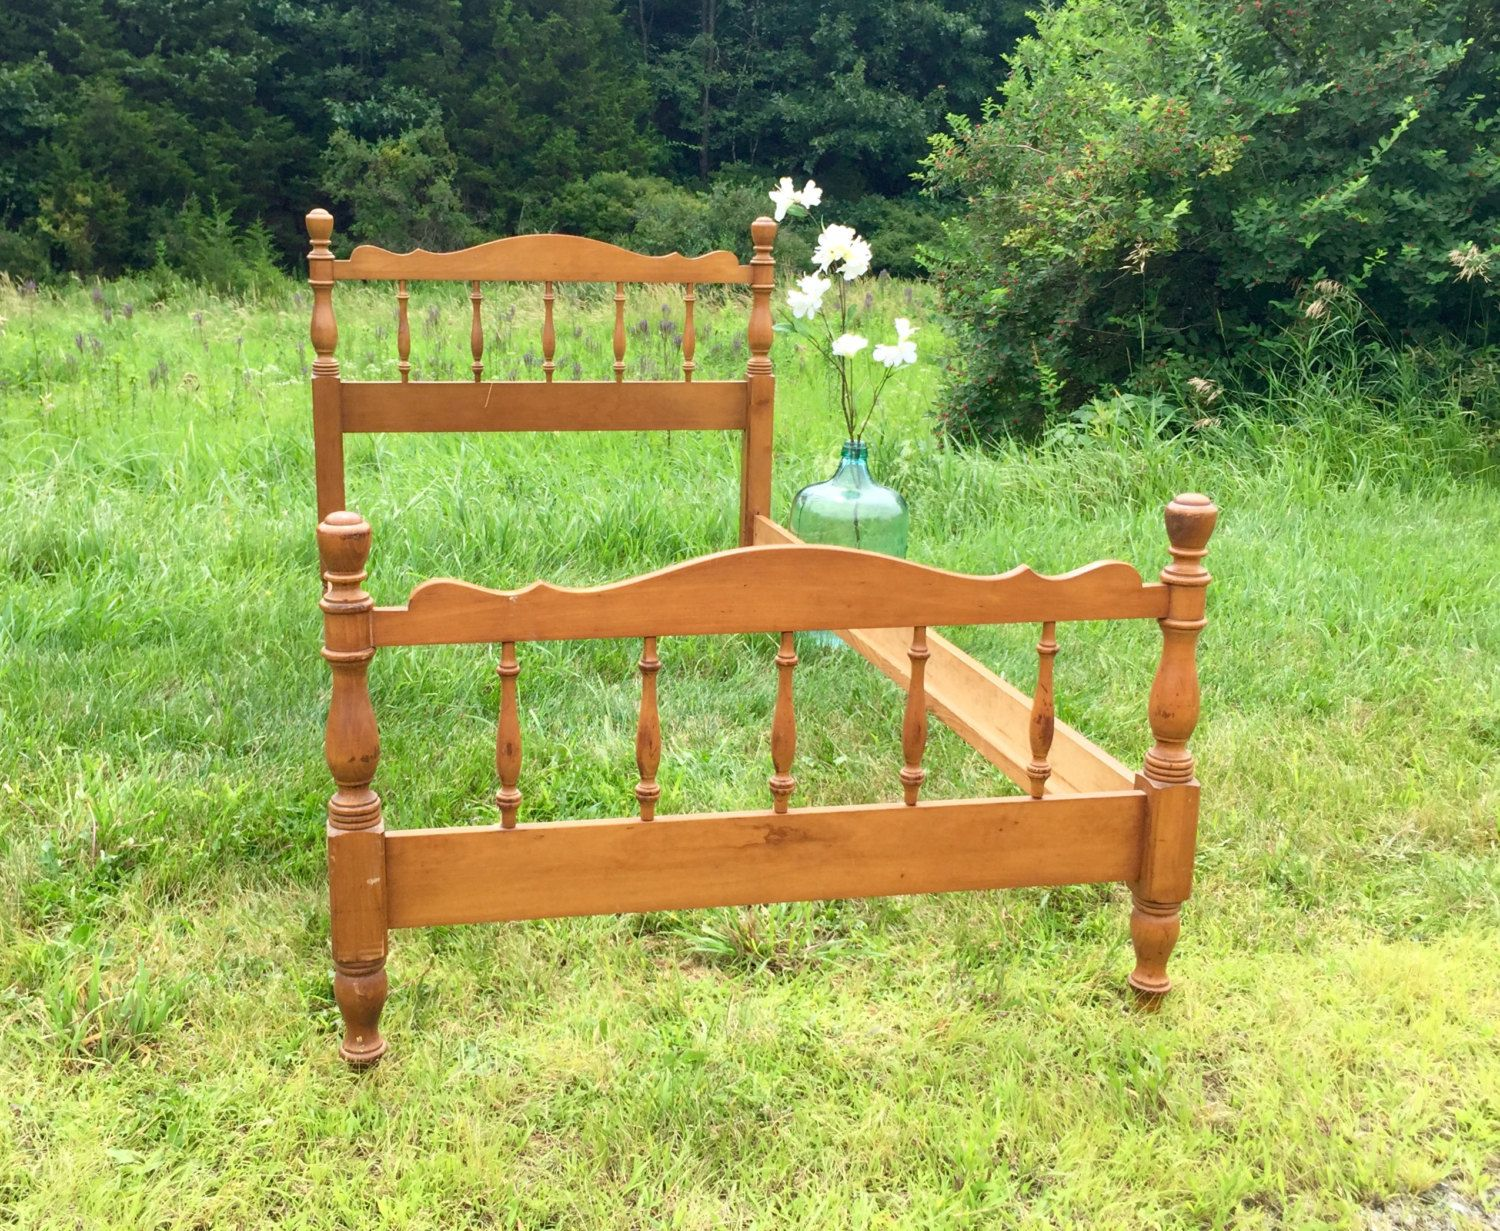 Spindle Bed, Wooden Twin Bed Frame, Twin bed frame